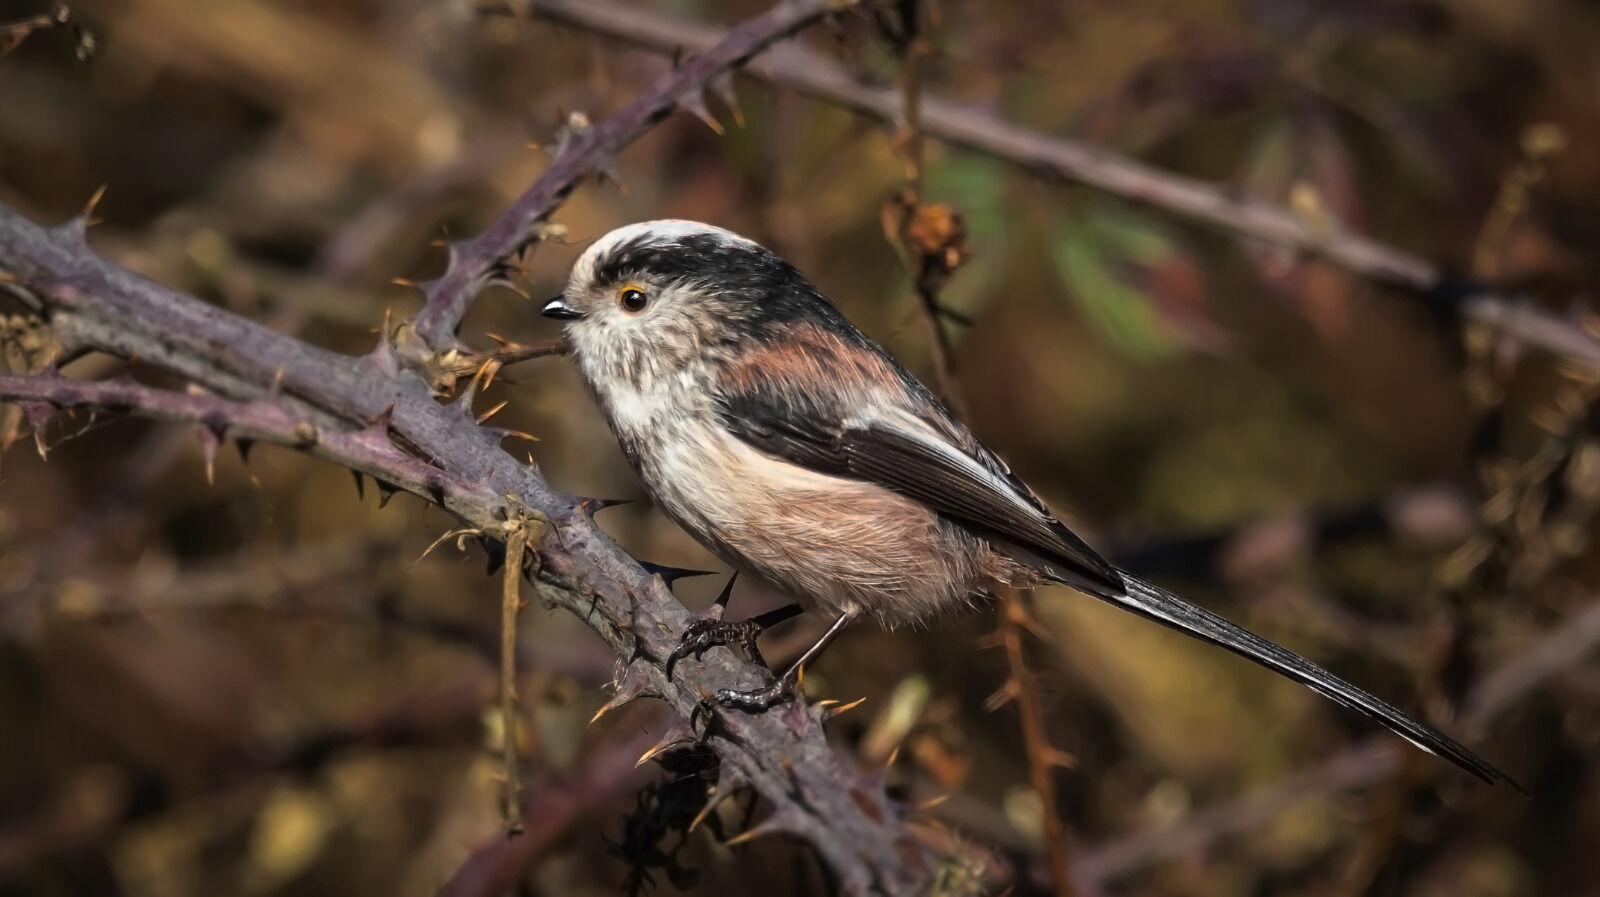 Group C - Commended - Long Tailed Tit - Frank Lock